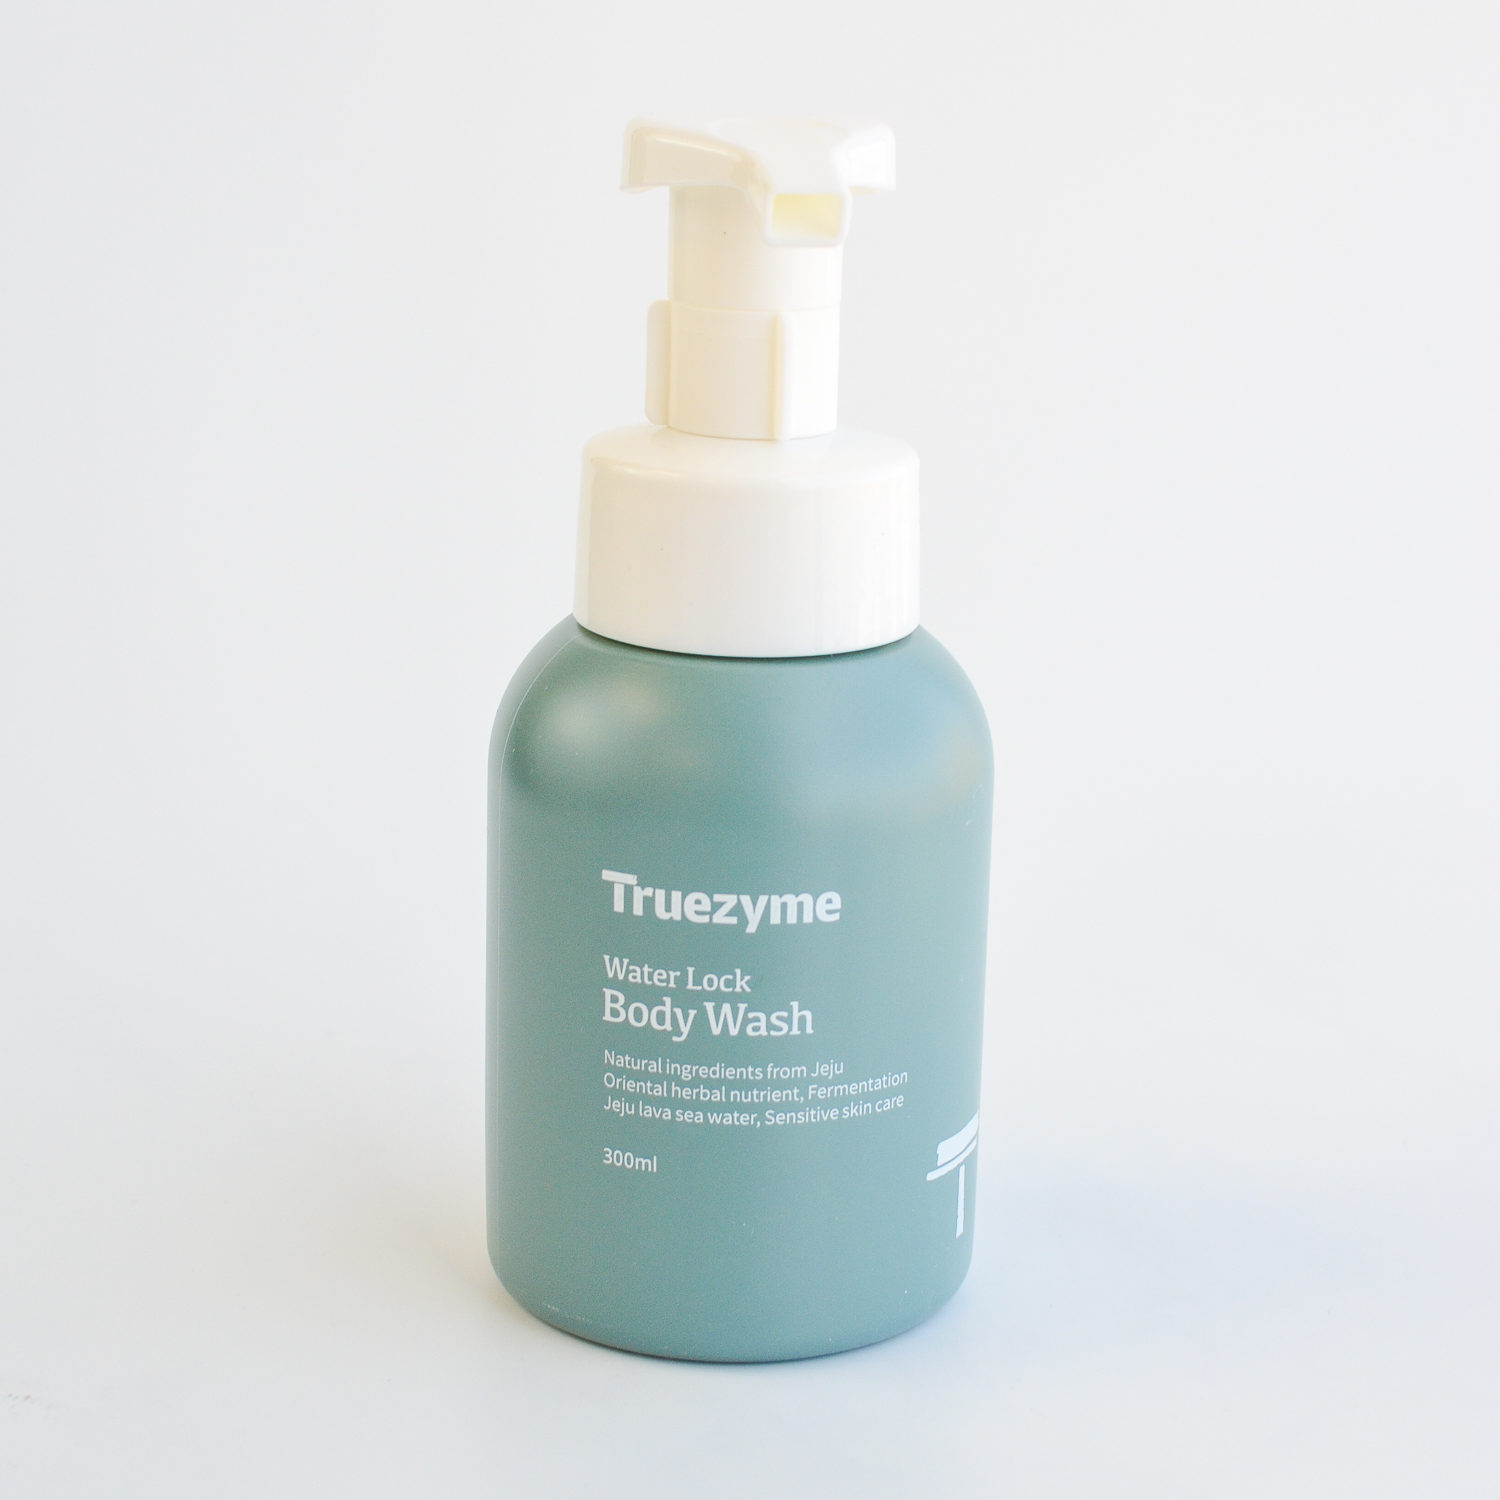 Truezyme Water Lock Body Wash